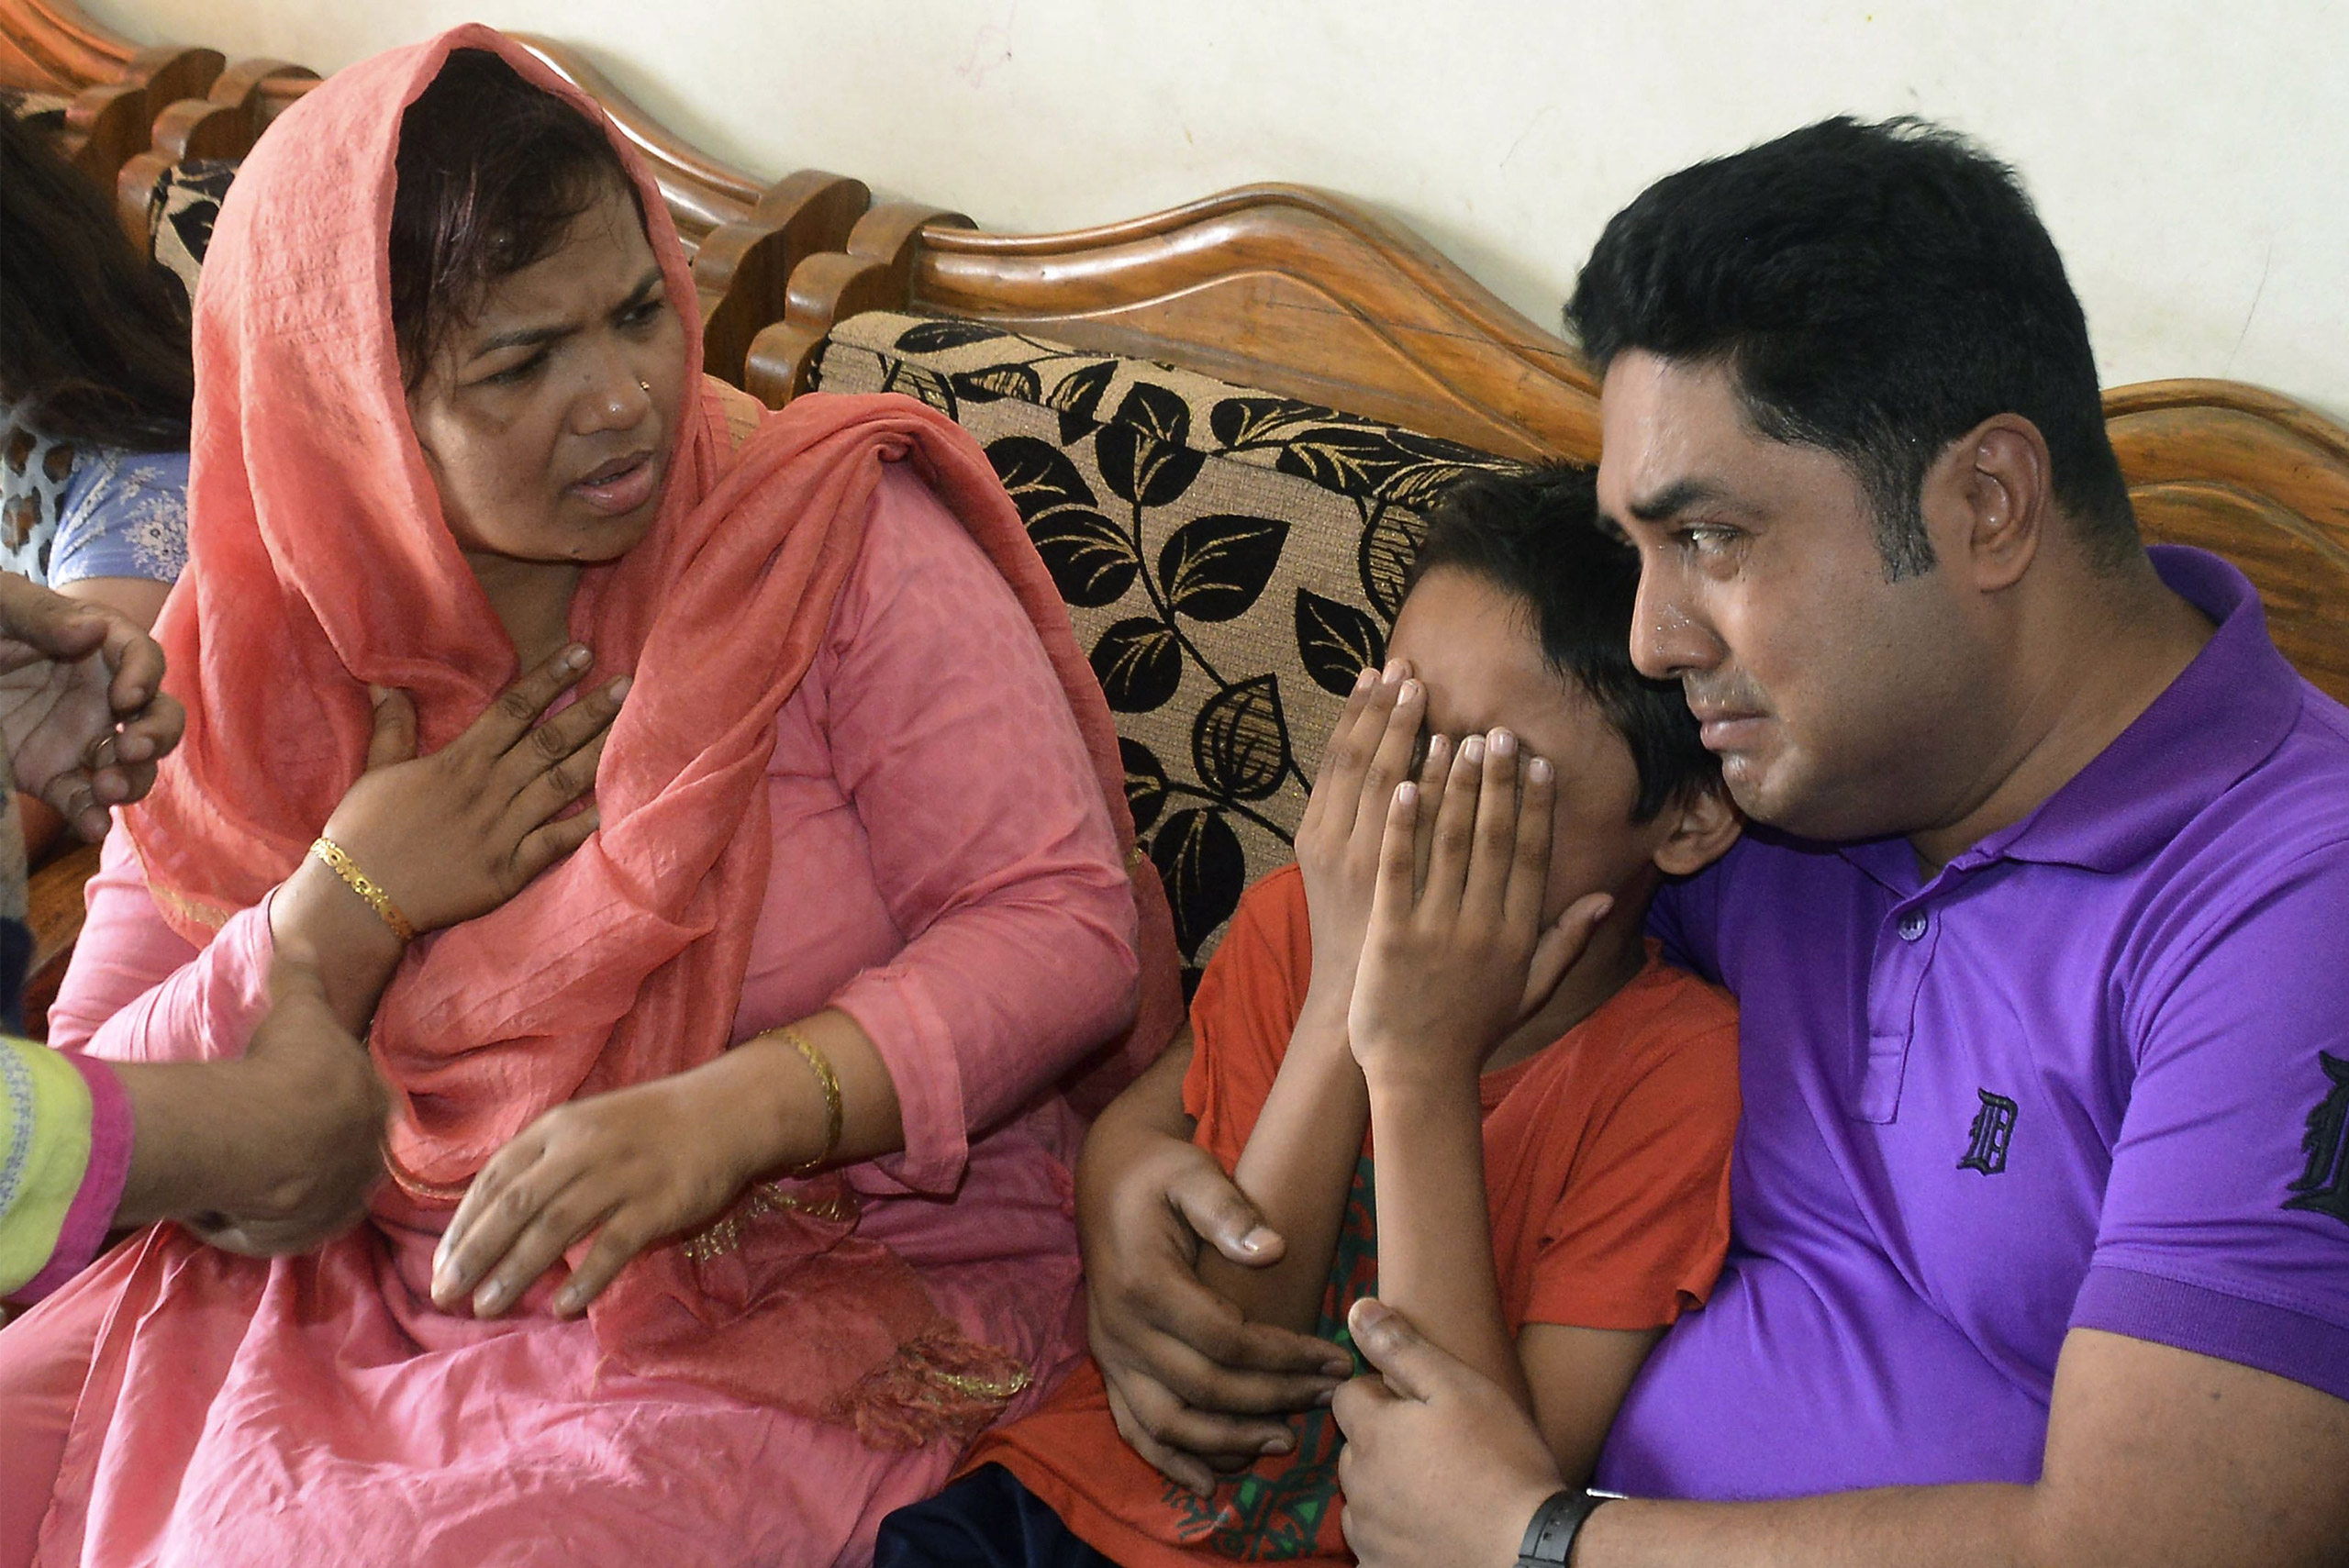 The young son of Mahmuda Aktar, the wife of a top Bangladeshi anti-terror officer,  mourns after she was shot dead near her home in Chittagong on June 5, 2016.